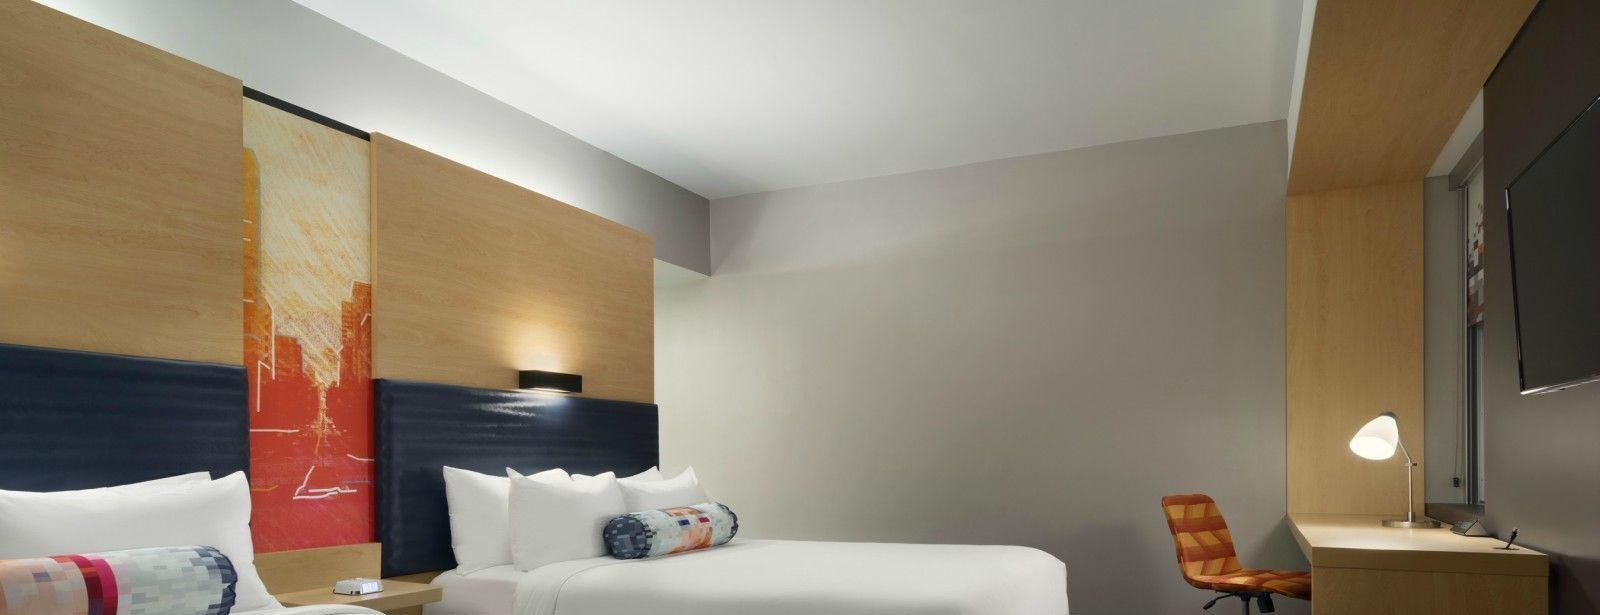 Miami Aventura Accommodations - Aloft Queen Room